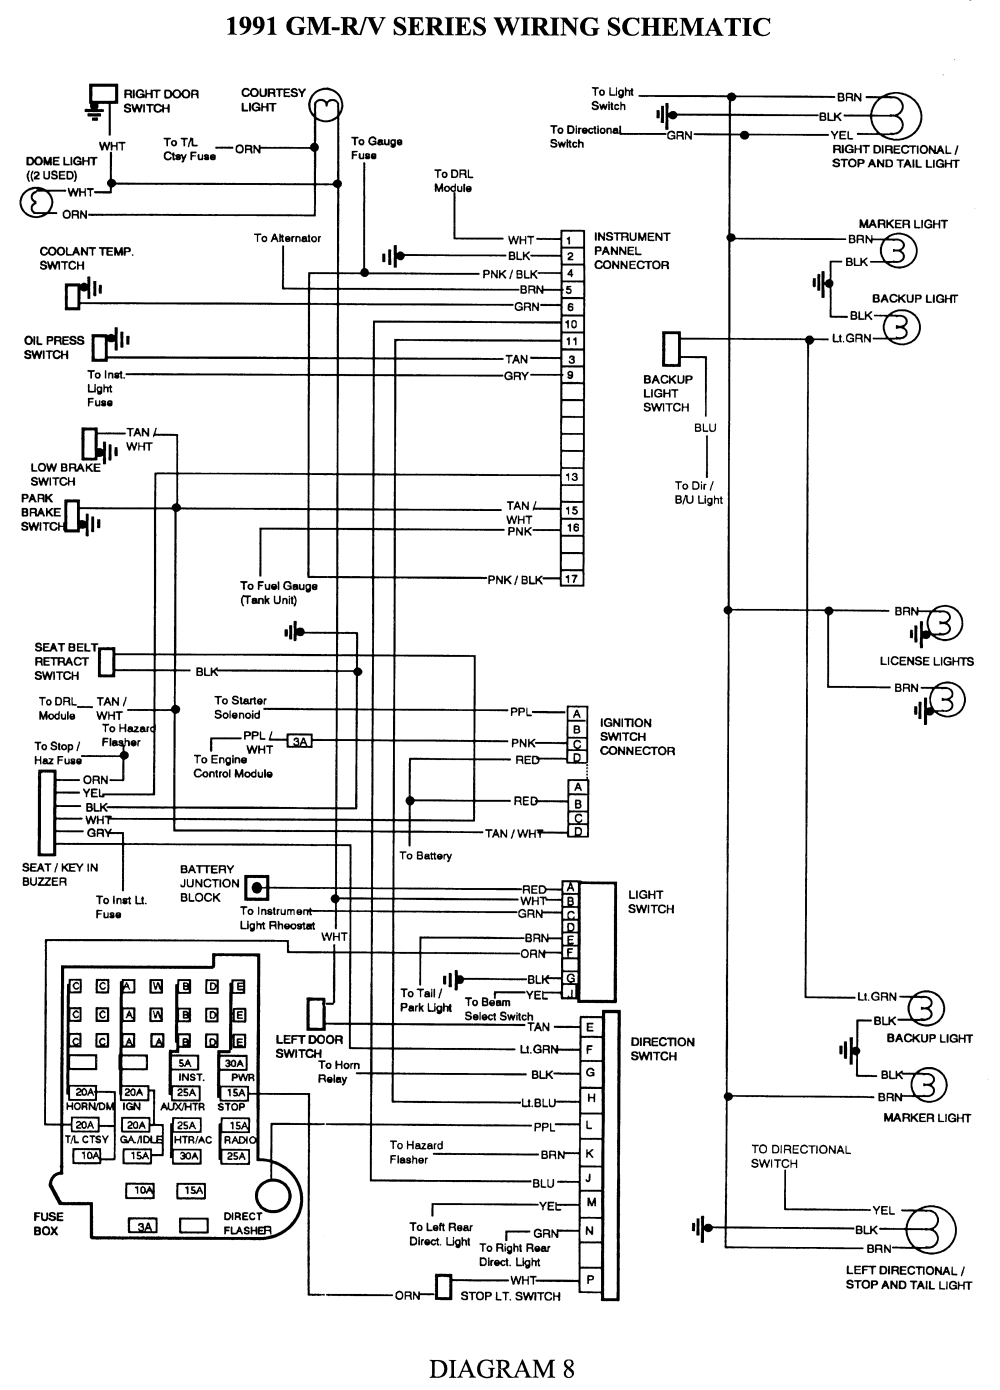 98 Blazer Wiring Diagram - Wiring Diagram Data arch-adjust -  arch-adjust.portorhoca.it | 1998 Chevy Blazer Fuse Diagram |  | arch-adjust.portorhoca.it